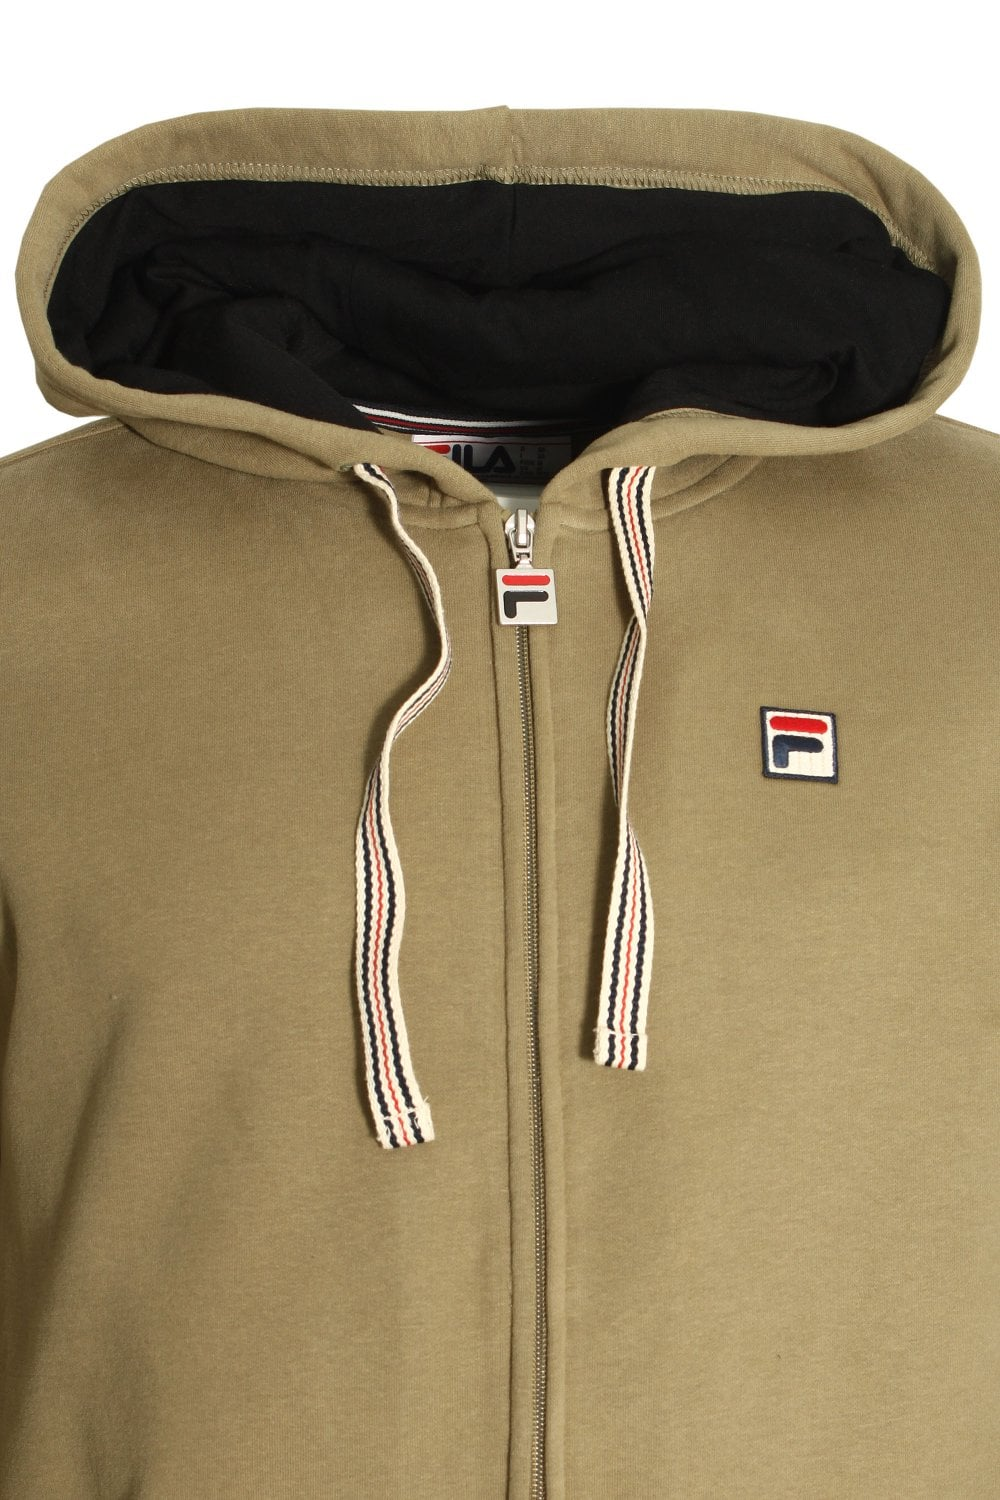 0d72a24140ab Activewear Clothes, Shoes & Accessories Dryg/Black Mens Hoody FILA VINTAGE  Tenconi Zip Through Hoodie